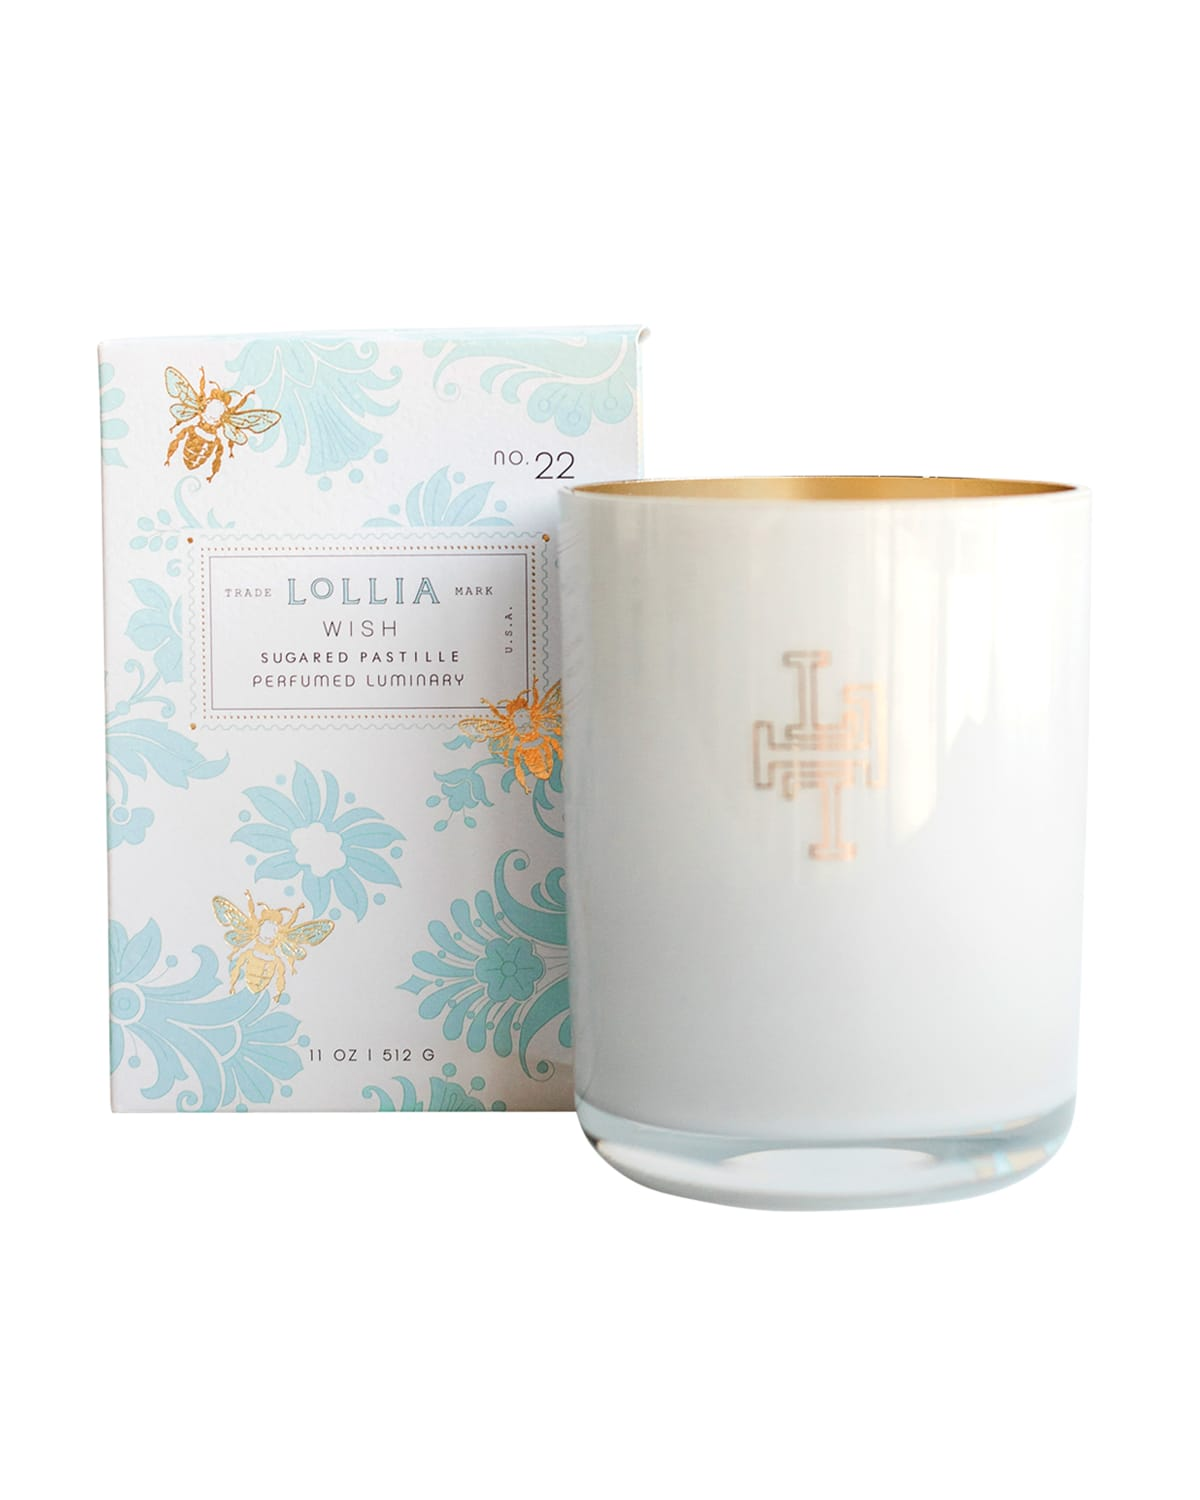 11 oz. Wish Sugared Pastille Luminary Scented Candle